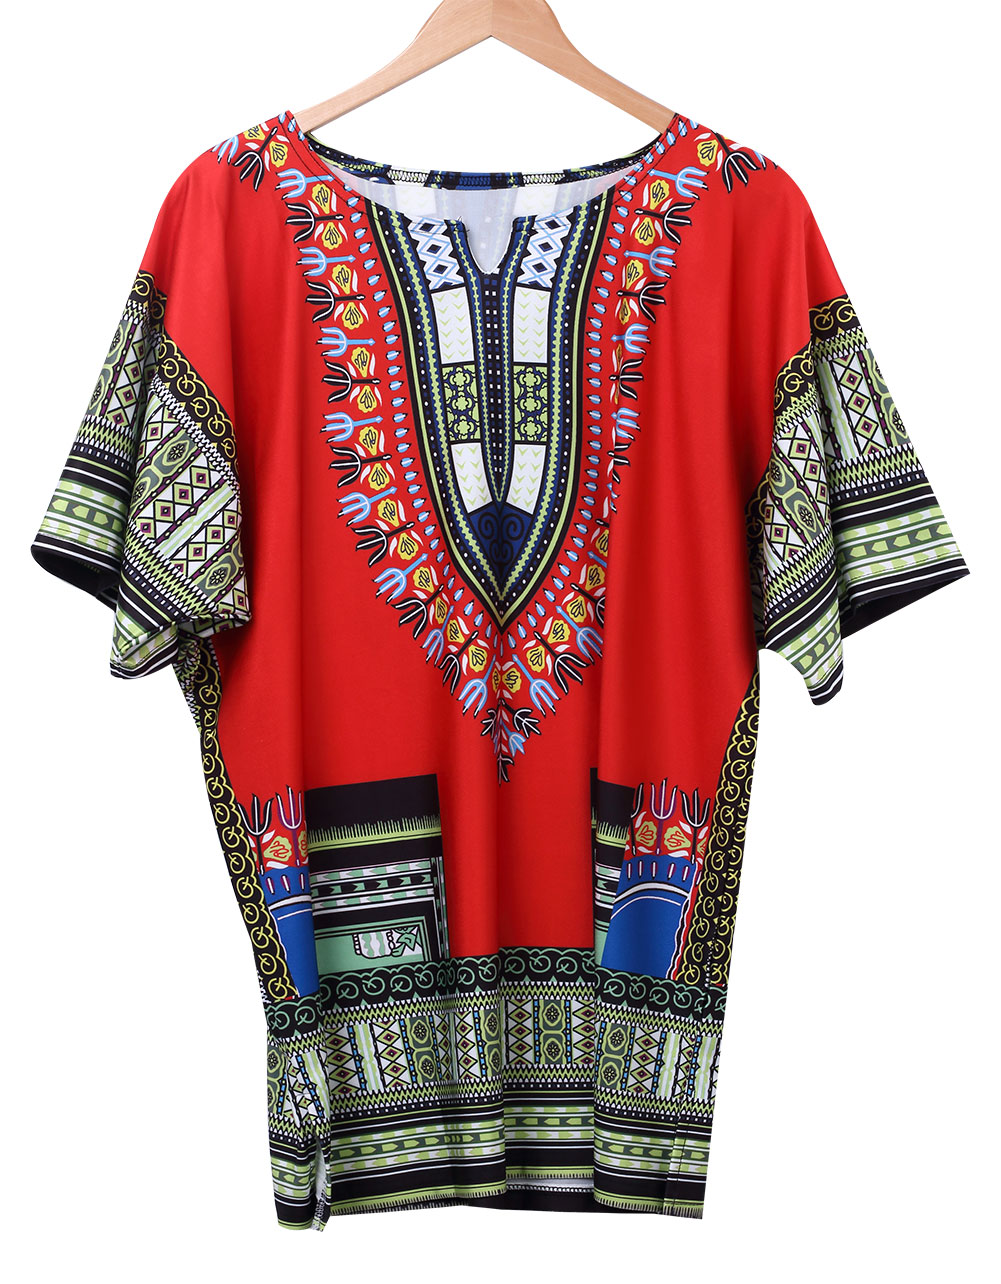 p1642 femmes dashiki impression africaine traditionnelle robe manches courtes ro ebay. Black Bedroom Furniture Sets. Home Design Ideas